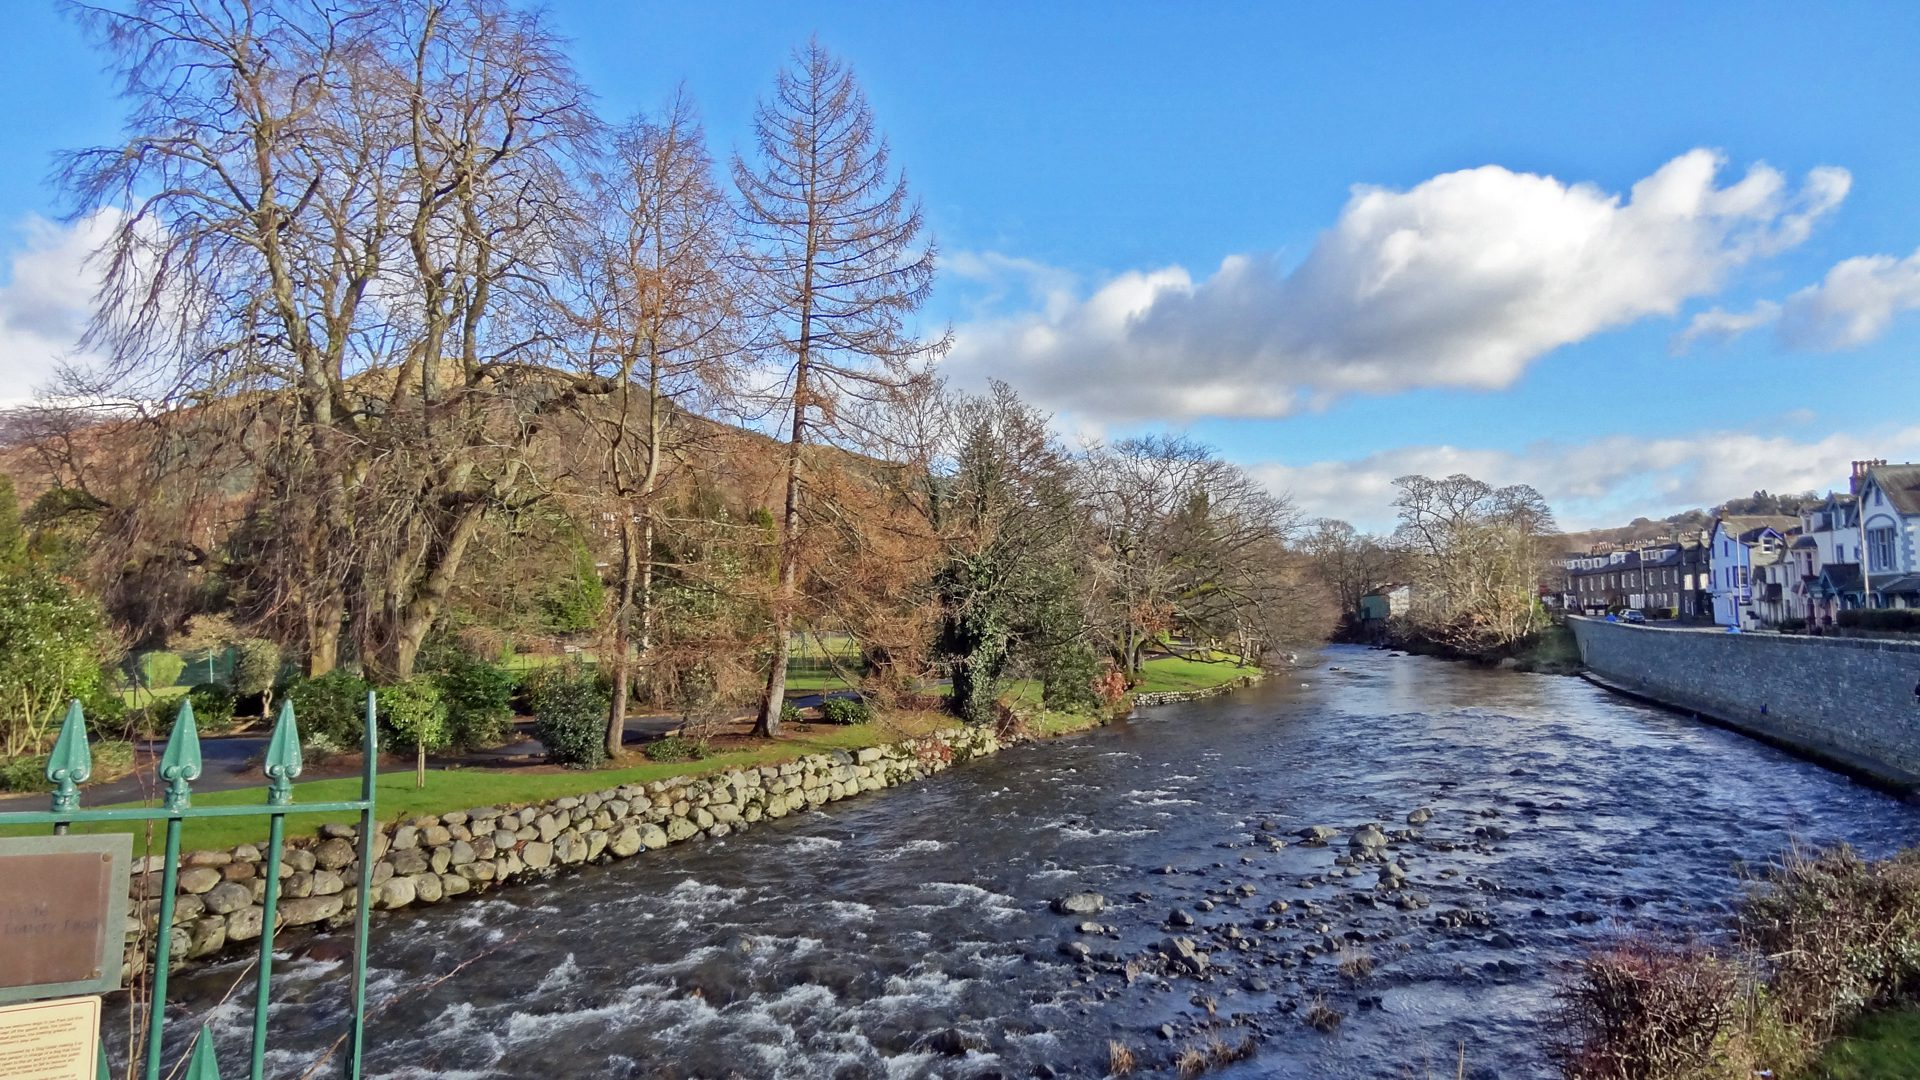 the River Greta in Fitz Park, with Penrith Road on the right